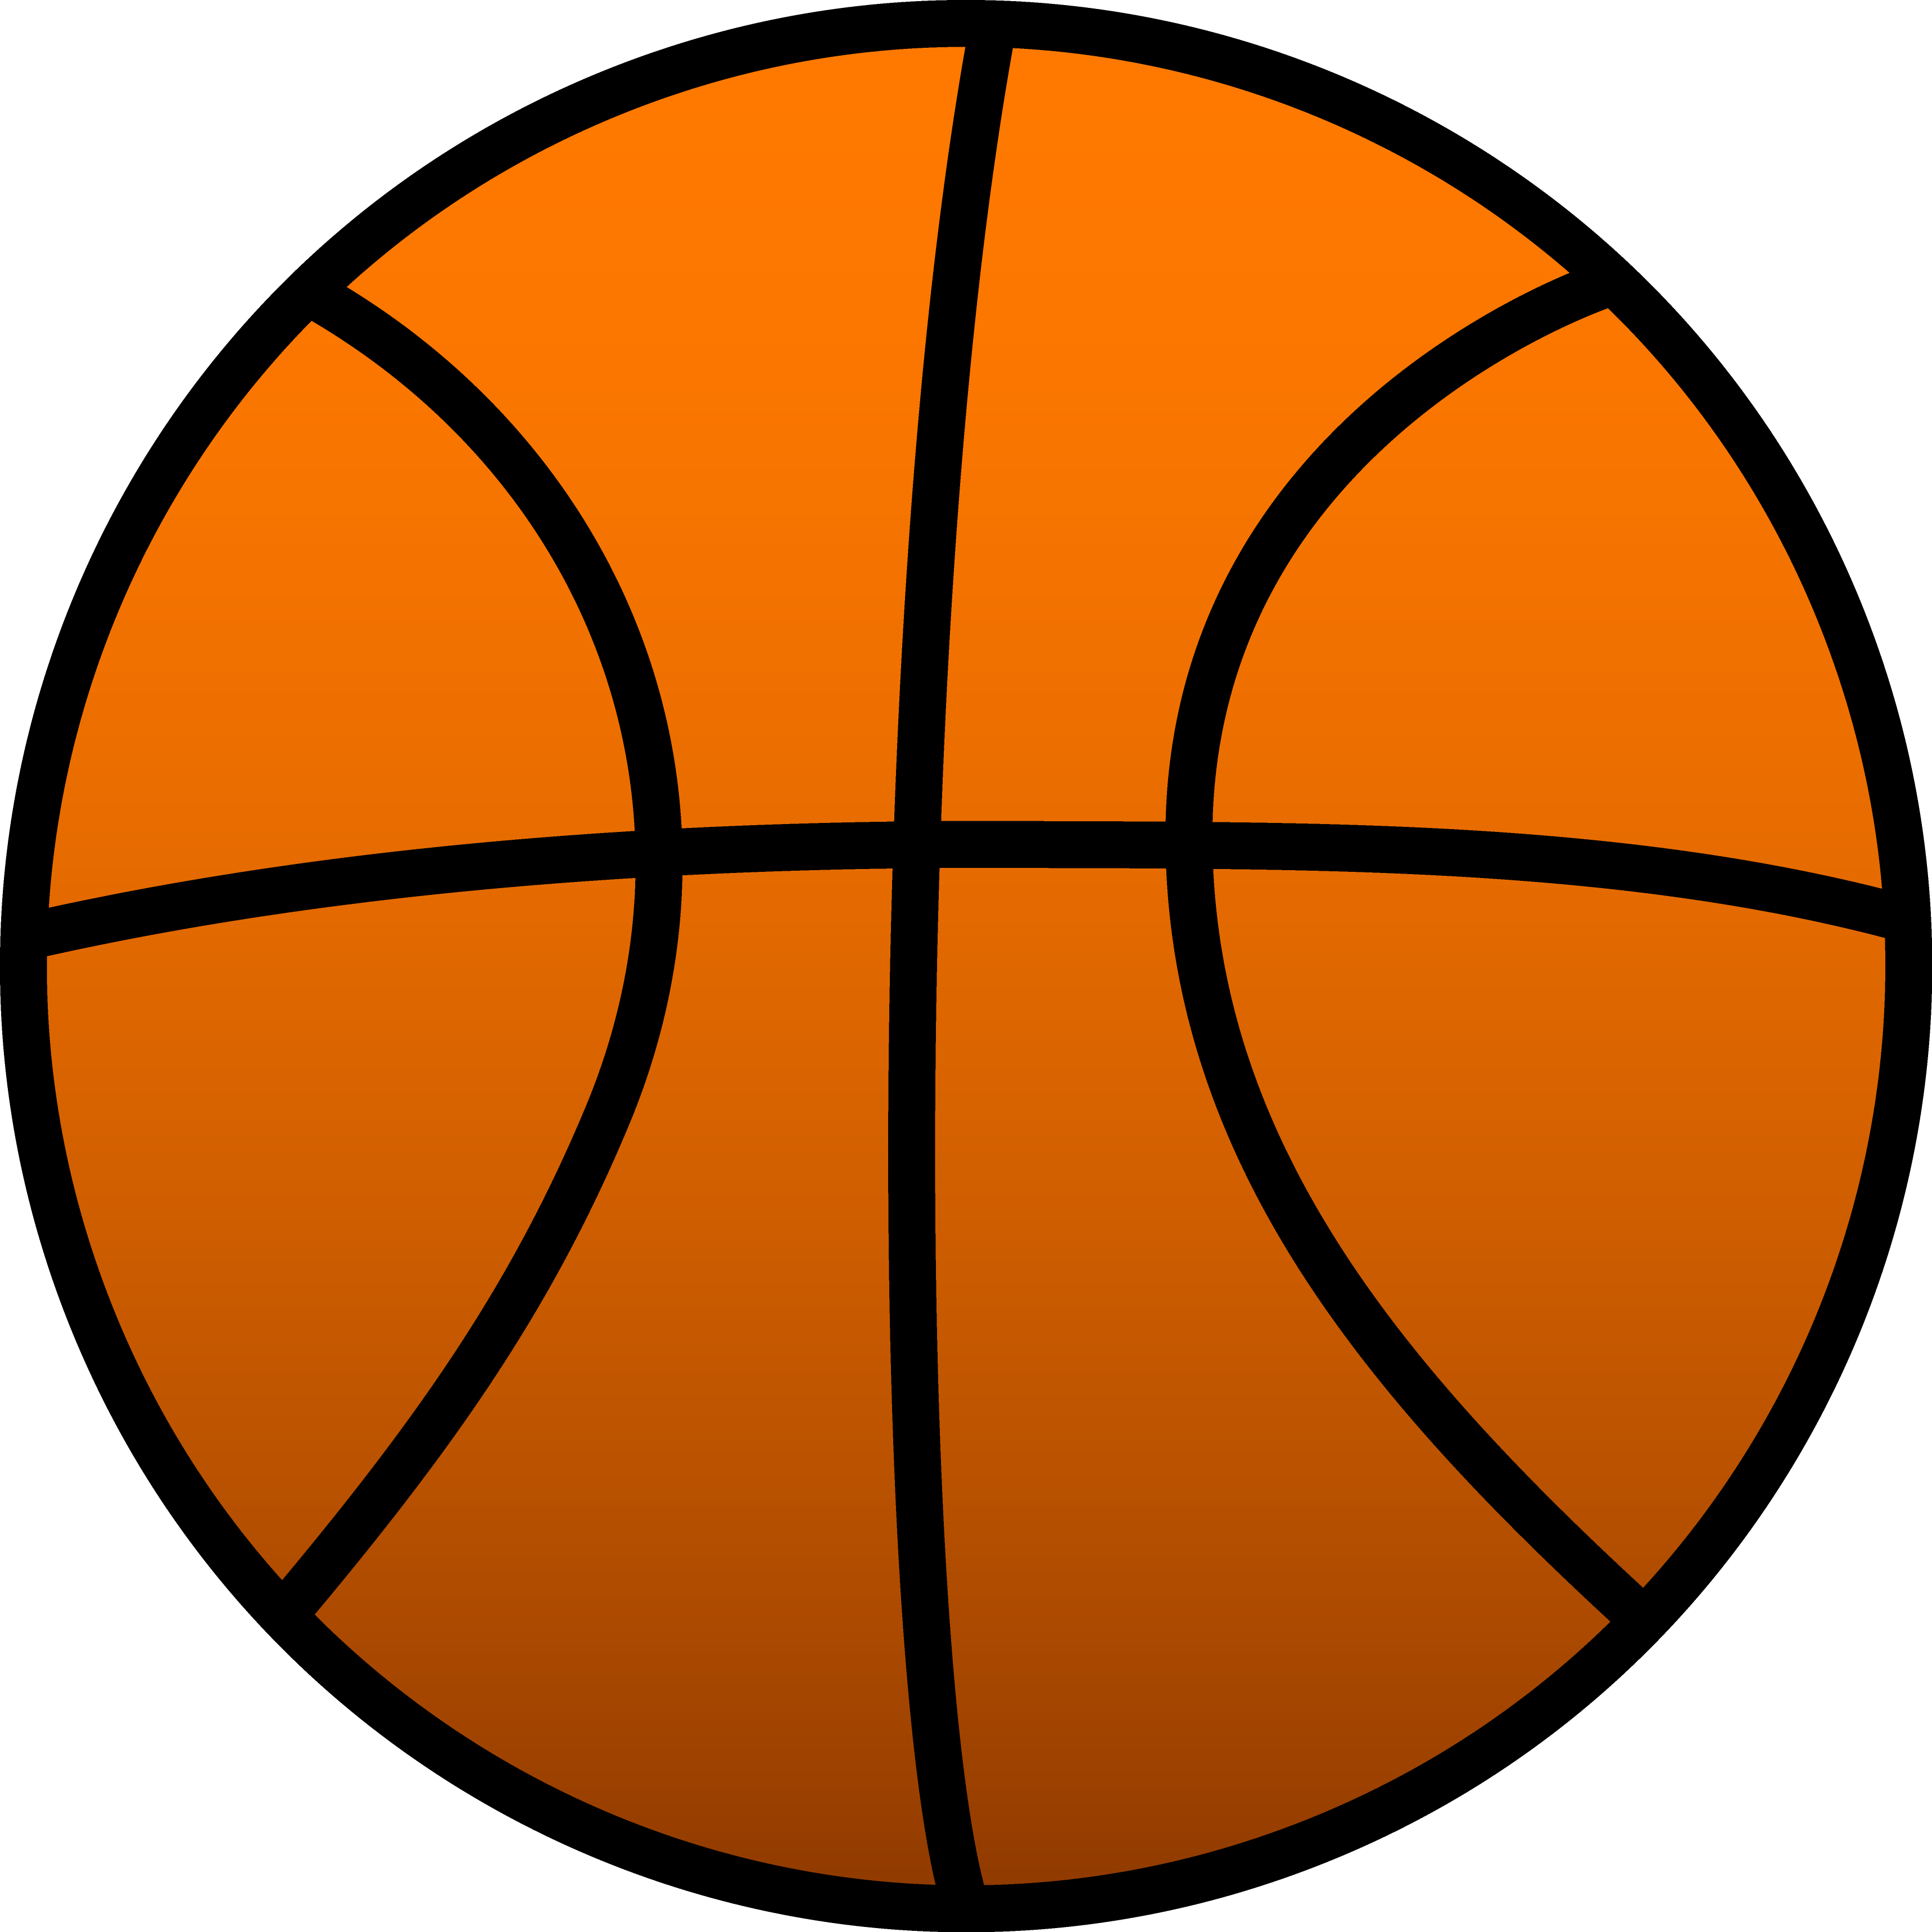 basketball scoreboard clipart - Basketball Clipart Images